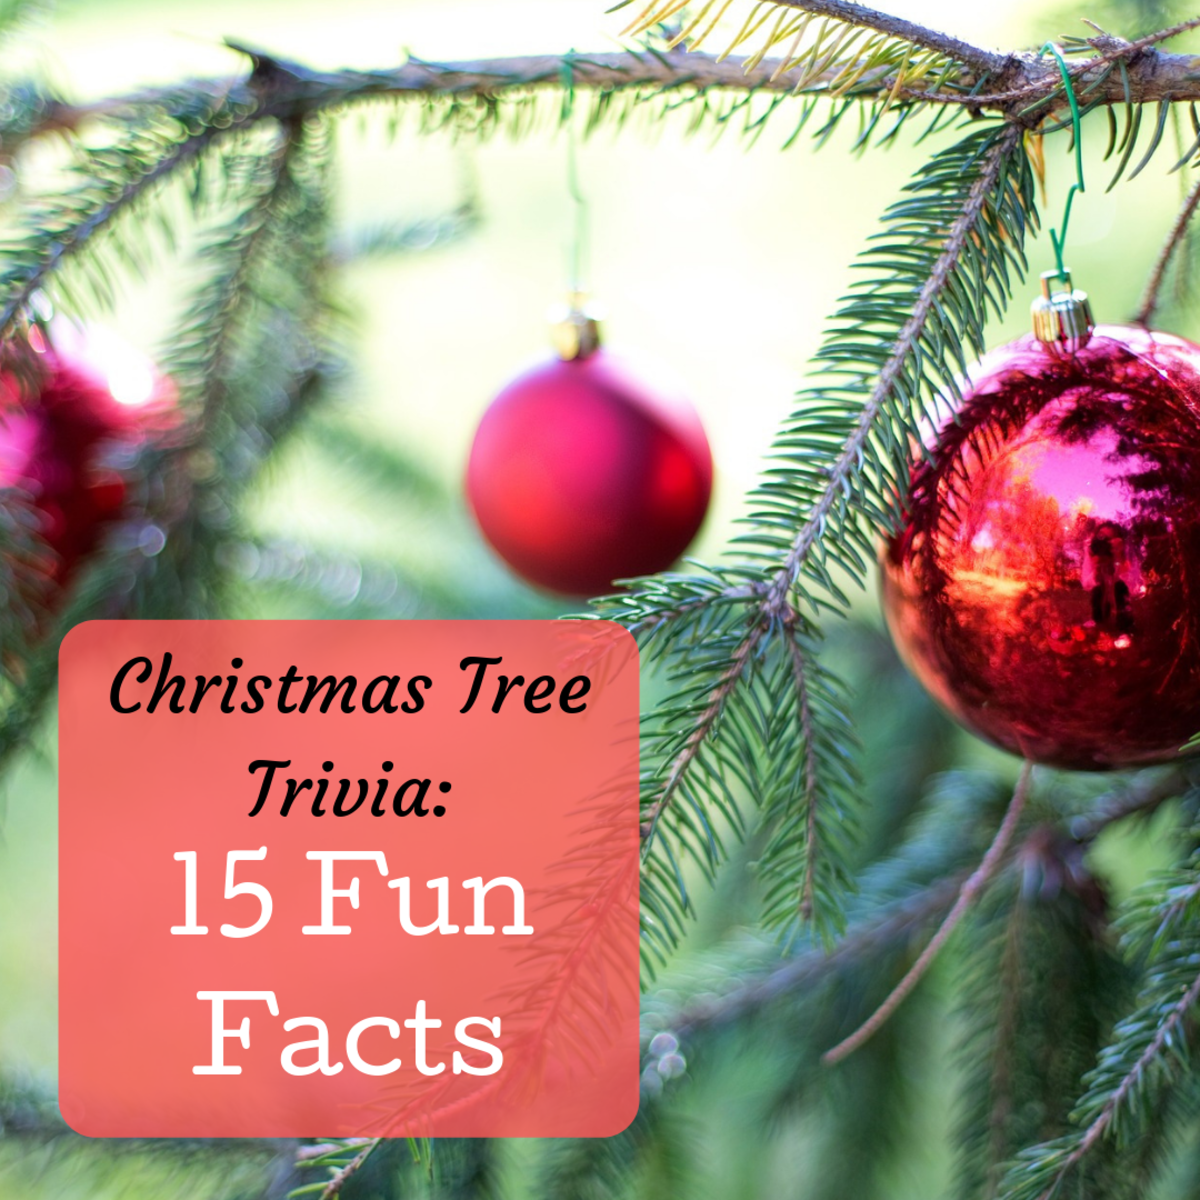 15 Trivia Facts About Christmas Trees